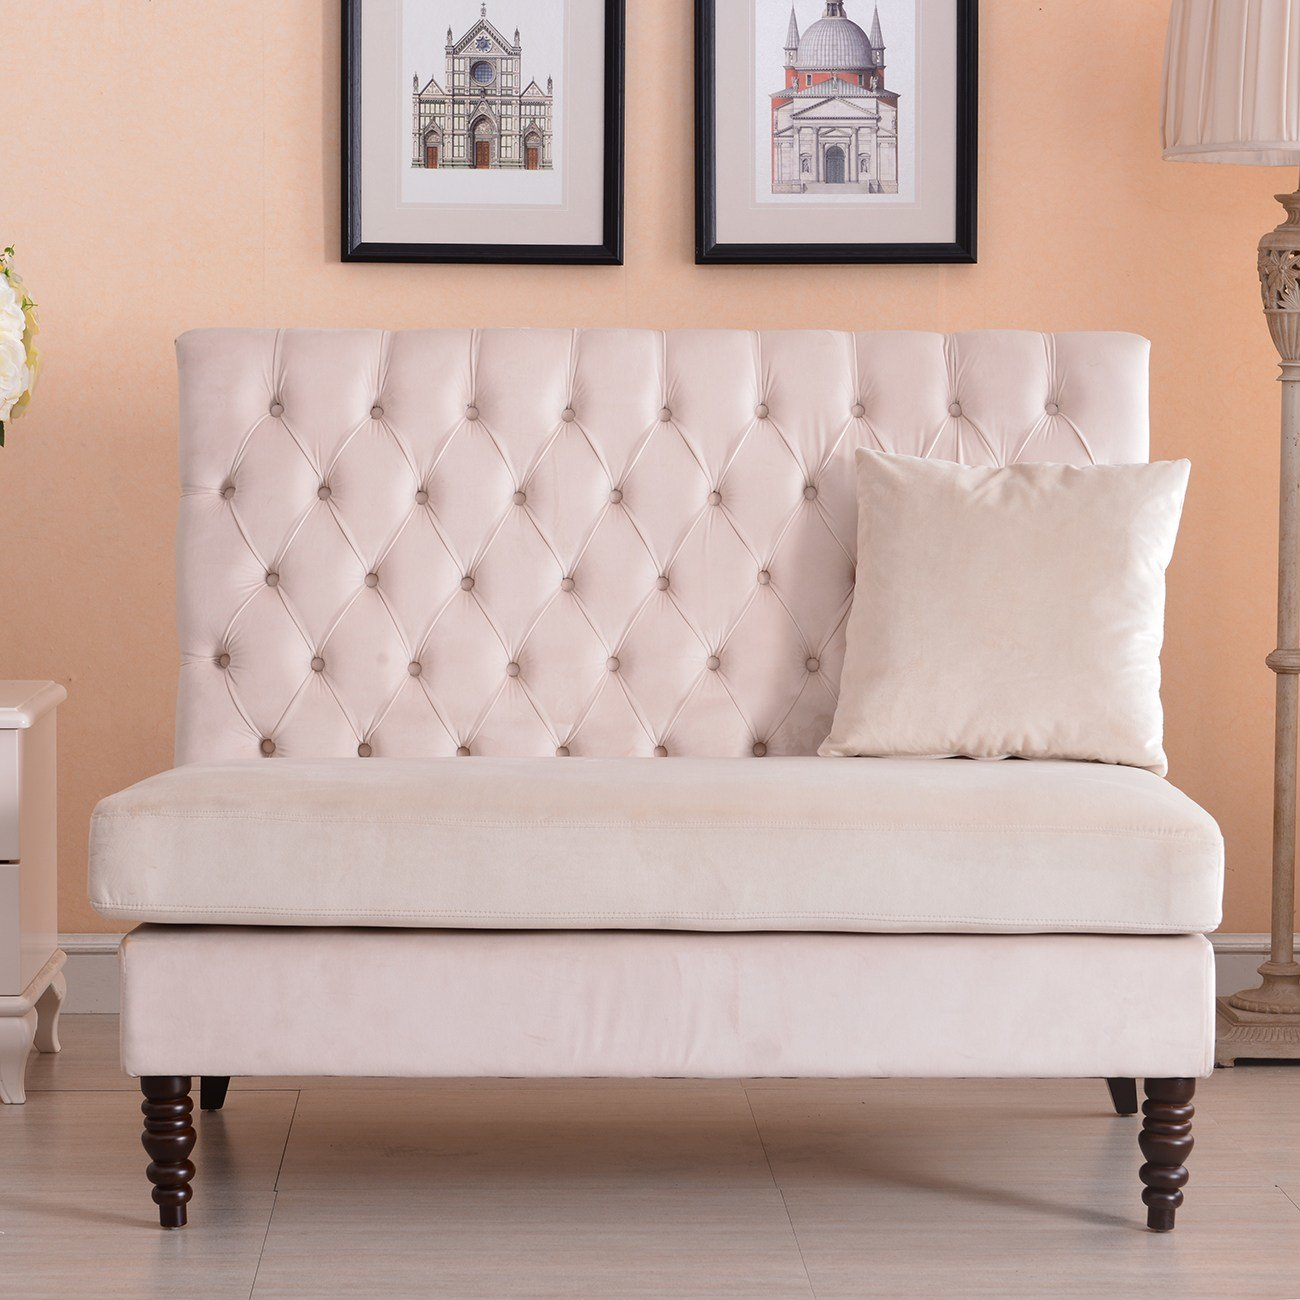 Best New Modern Tufted Settee Bedroom Bench Sofa High Back With Pictures